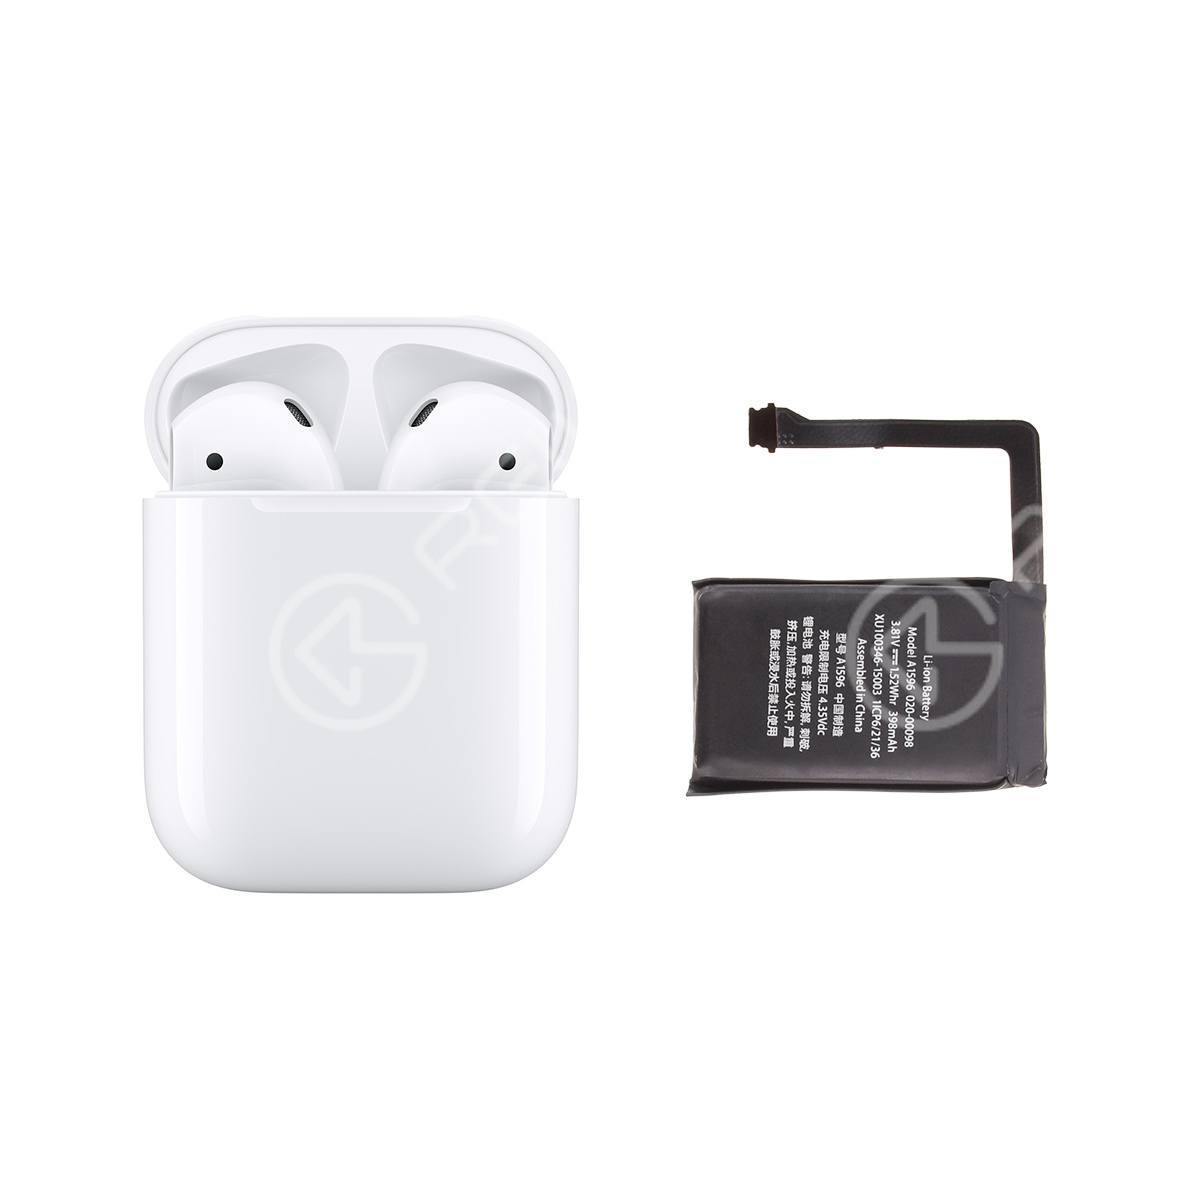 Replacement Battery For AirPods Charging Case